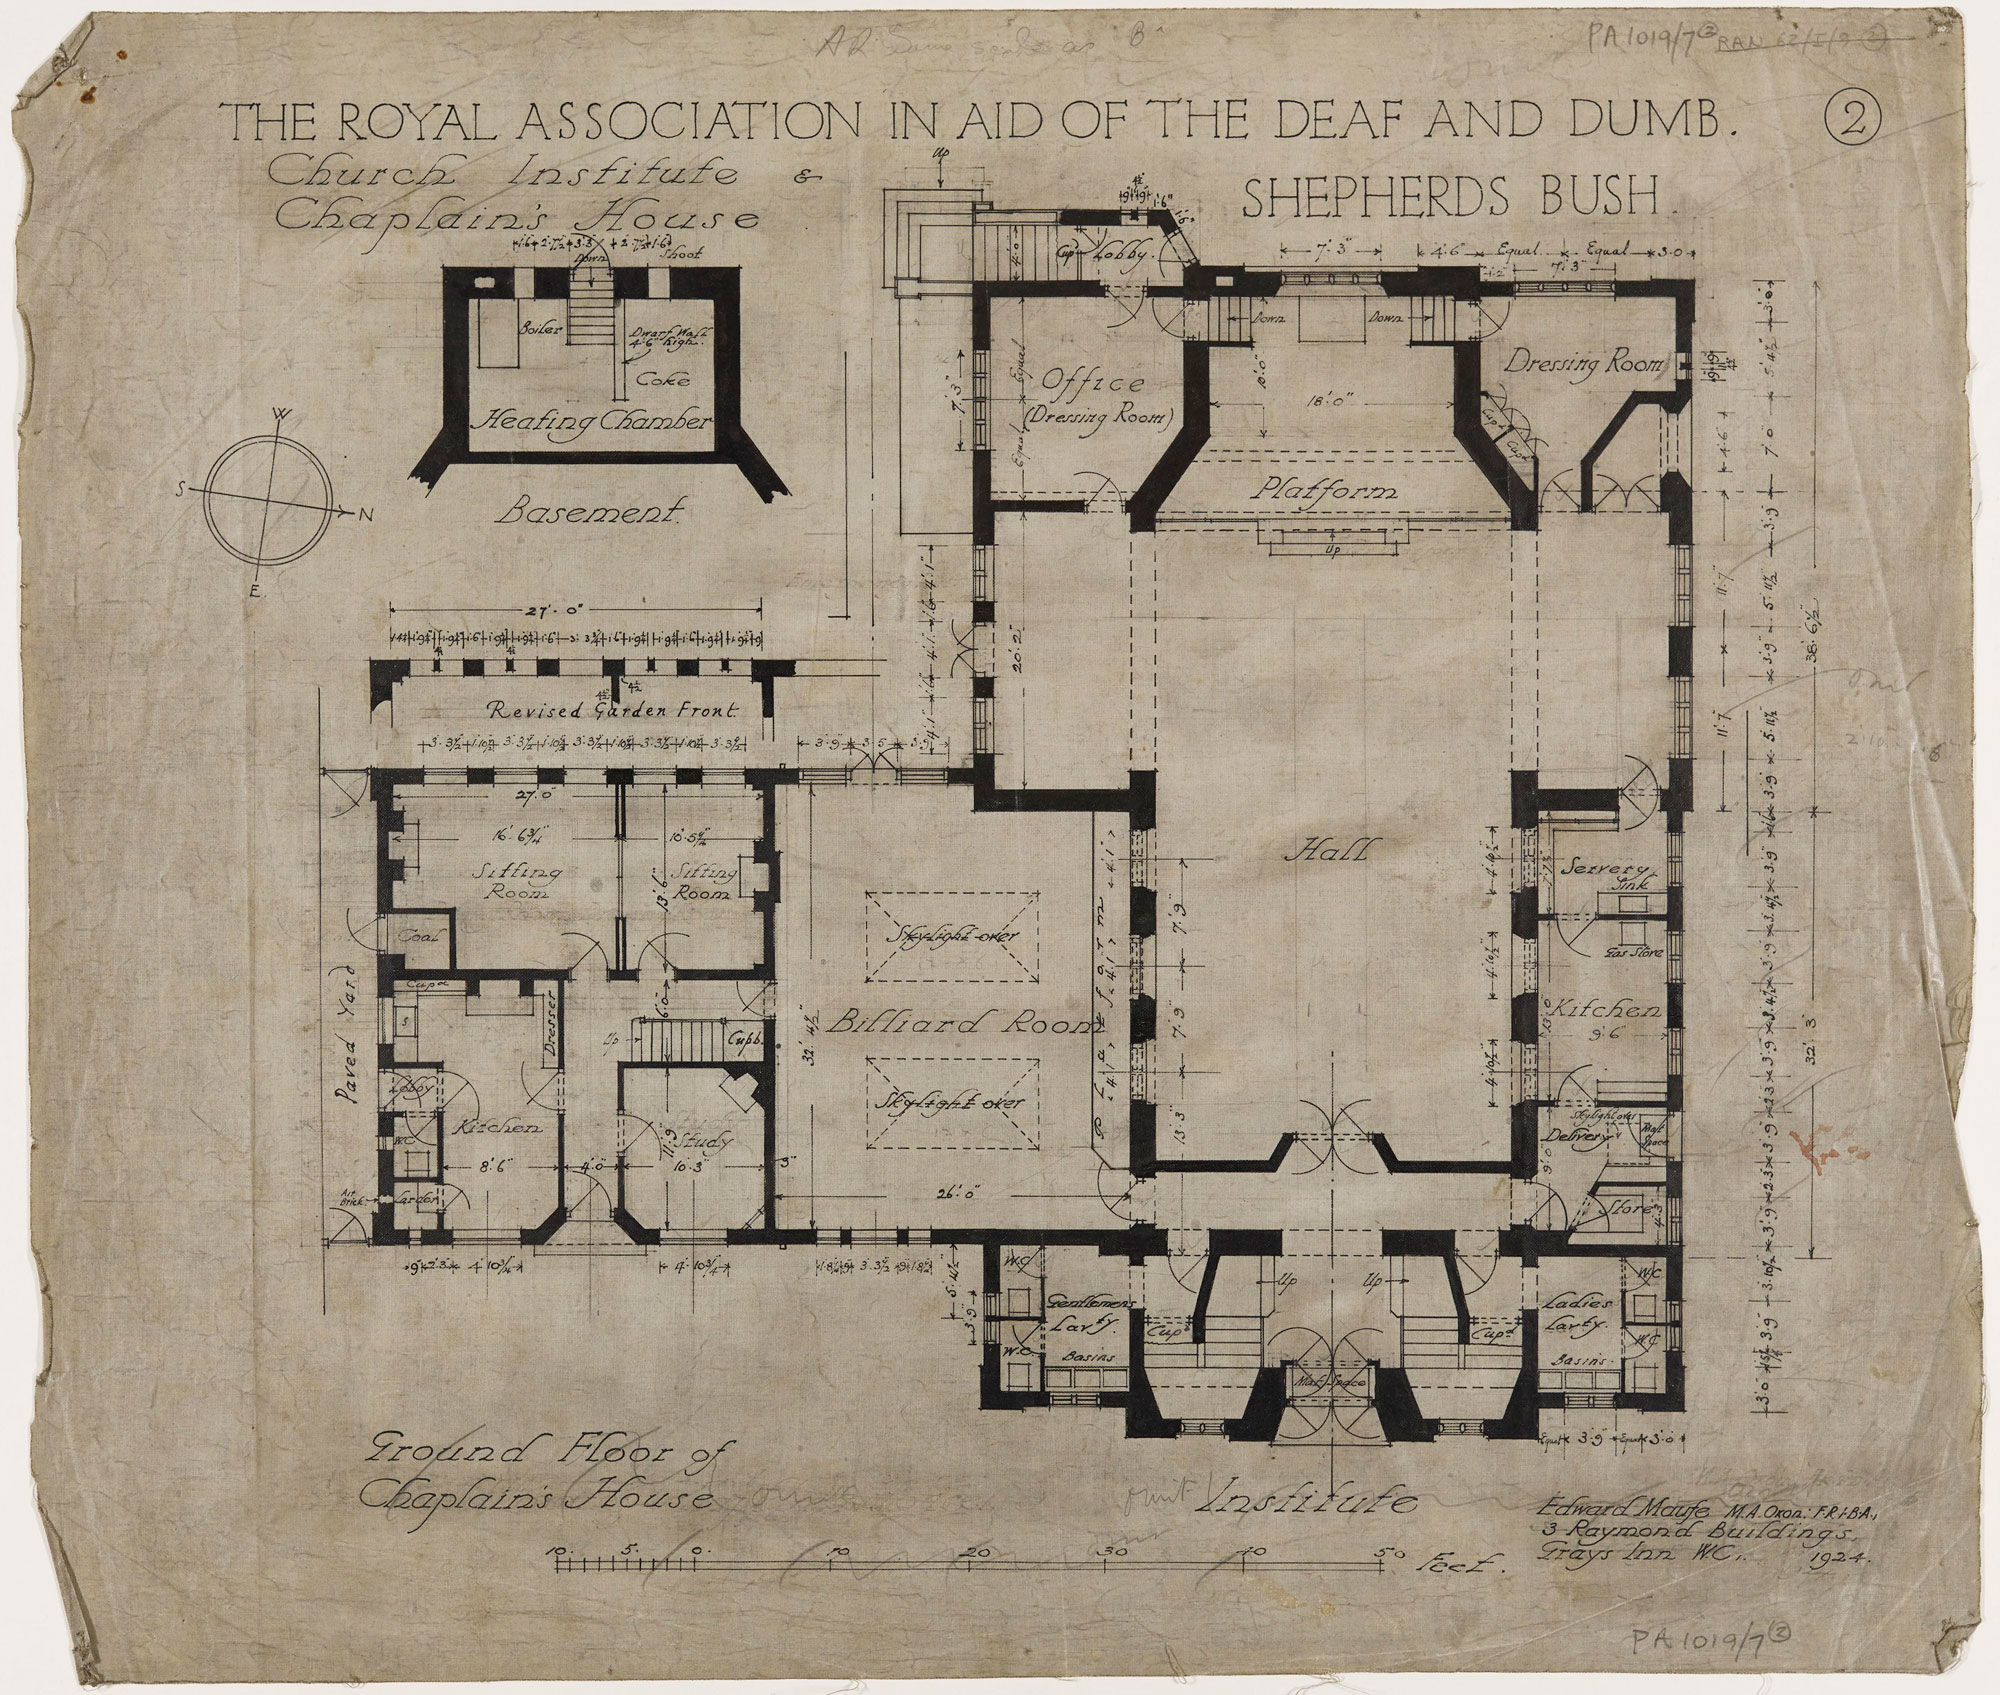 Architectural drawing of the floor plan of the church